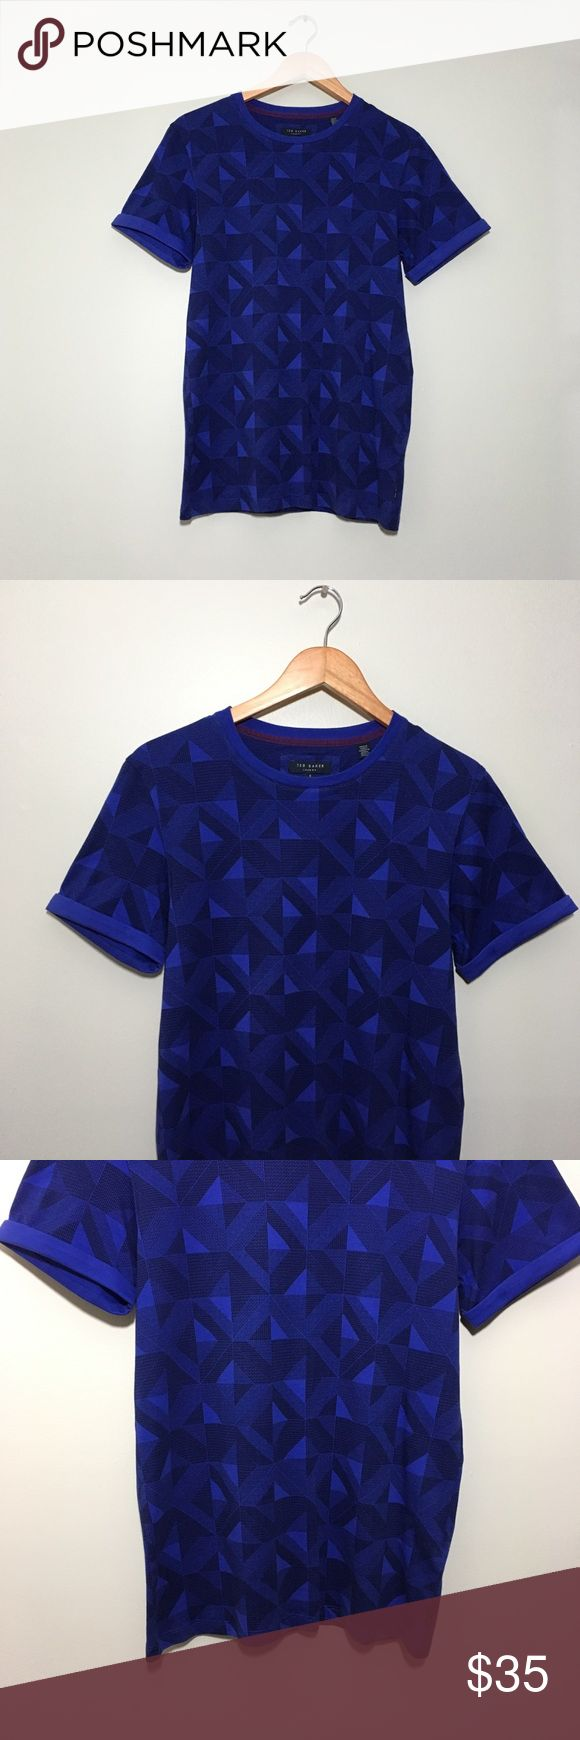 Ted Baker Geometric Printed T-Shirt Geometric Printed t-shirt by Ted Baker. Cuffed sleeves. Color was hard to photograph, but is not as bright as it appears. More of a muted light blue purple color, can appear lighter or darker depending on the lighting. Ted Baker size 2 is equivalent to a size small. Great condition. No rips or stains.  Measurements (approximate, taken laying flat): Underarm to underarm: 17.5 inches Length: 27 inches  Material: 100% cotton  ❌No trades❌ Ted Baker Shirts Tees…